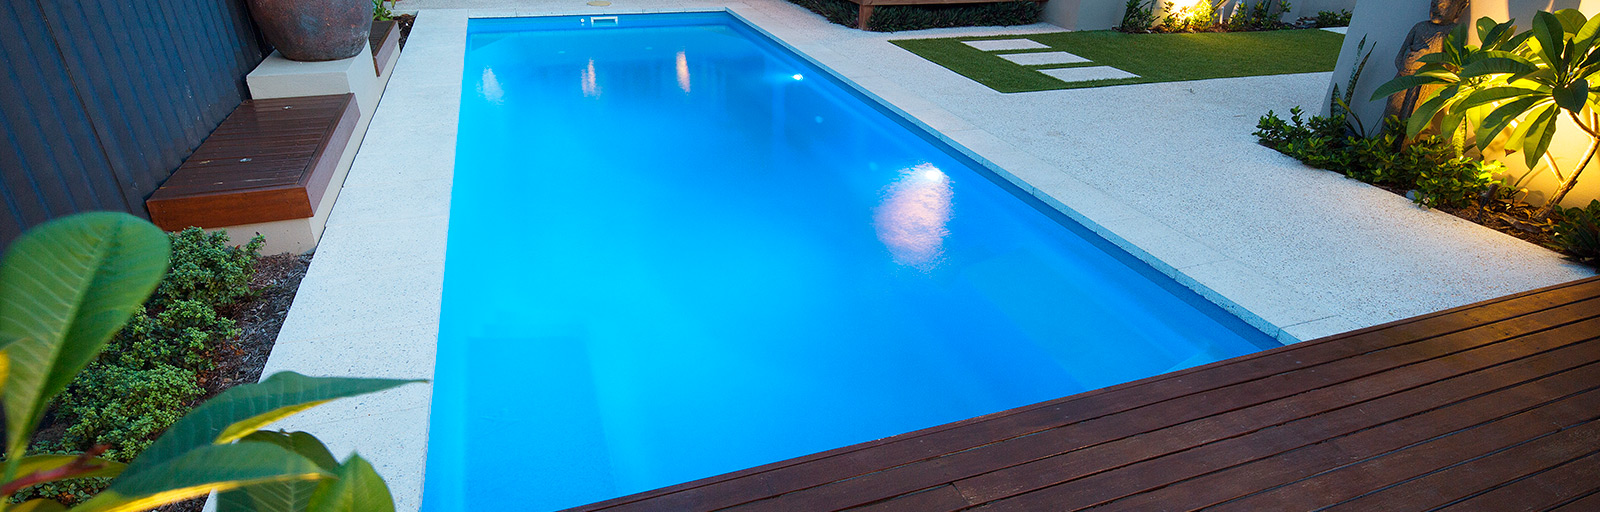 17 swimming pool design new zealand decor23 for Pool design new zealand